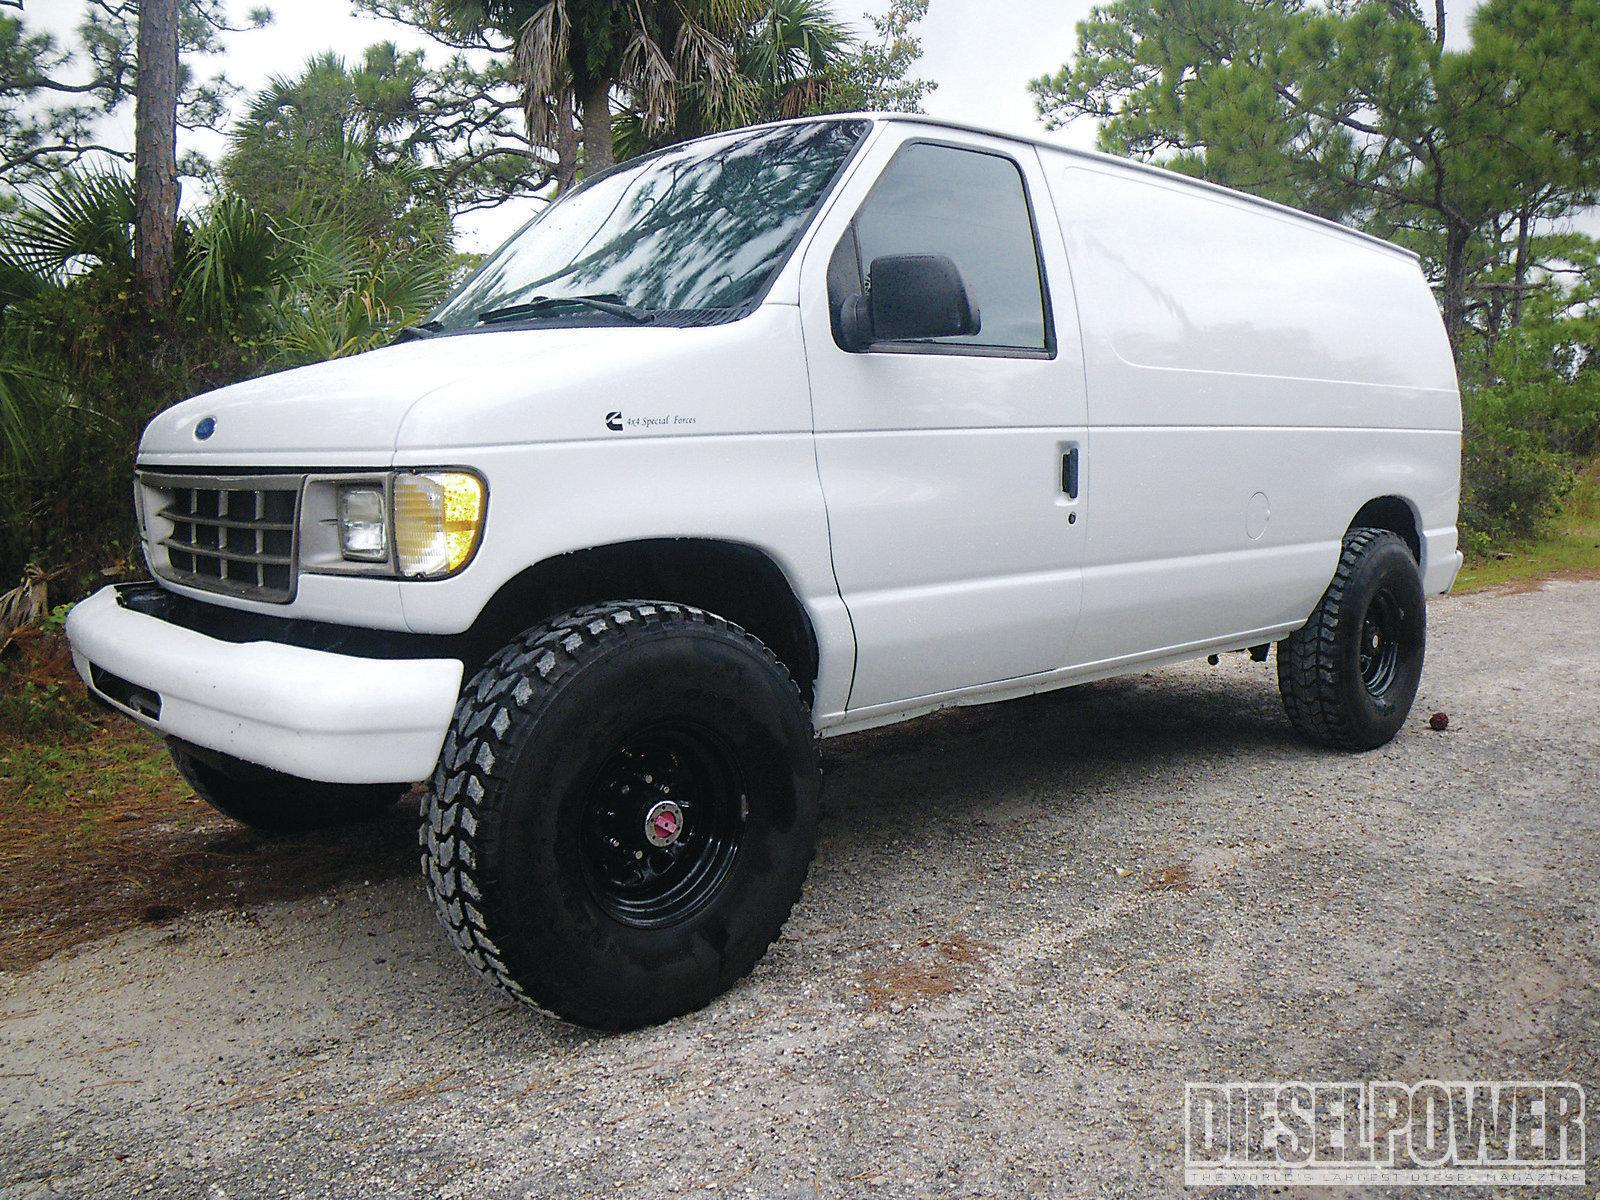 hight resolution of 800 1024 1280 1600 origin 1996 ford e 350